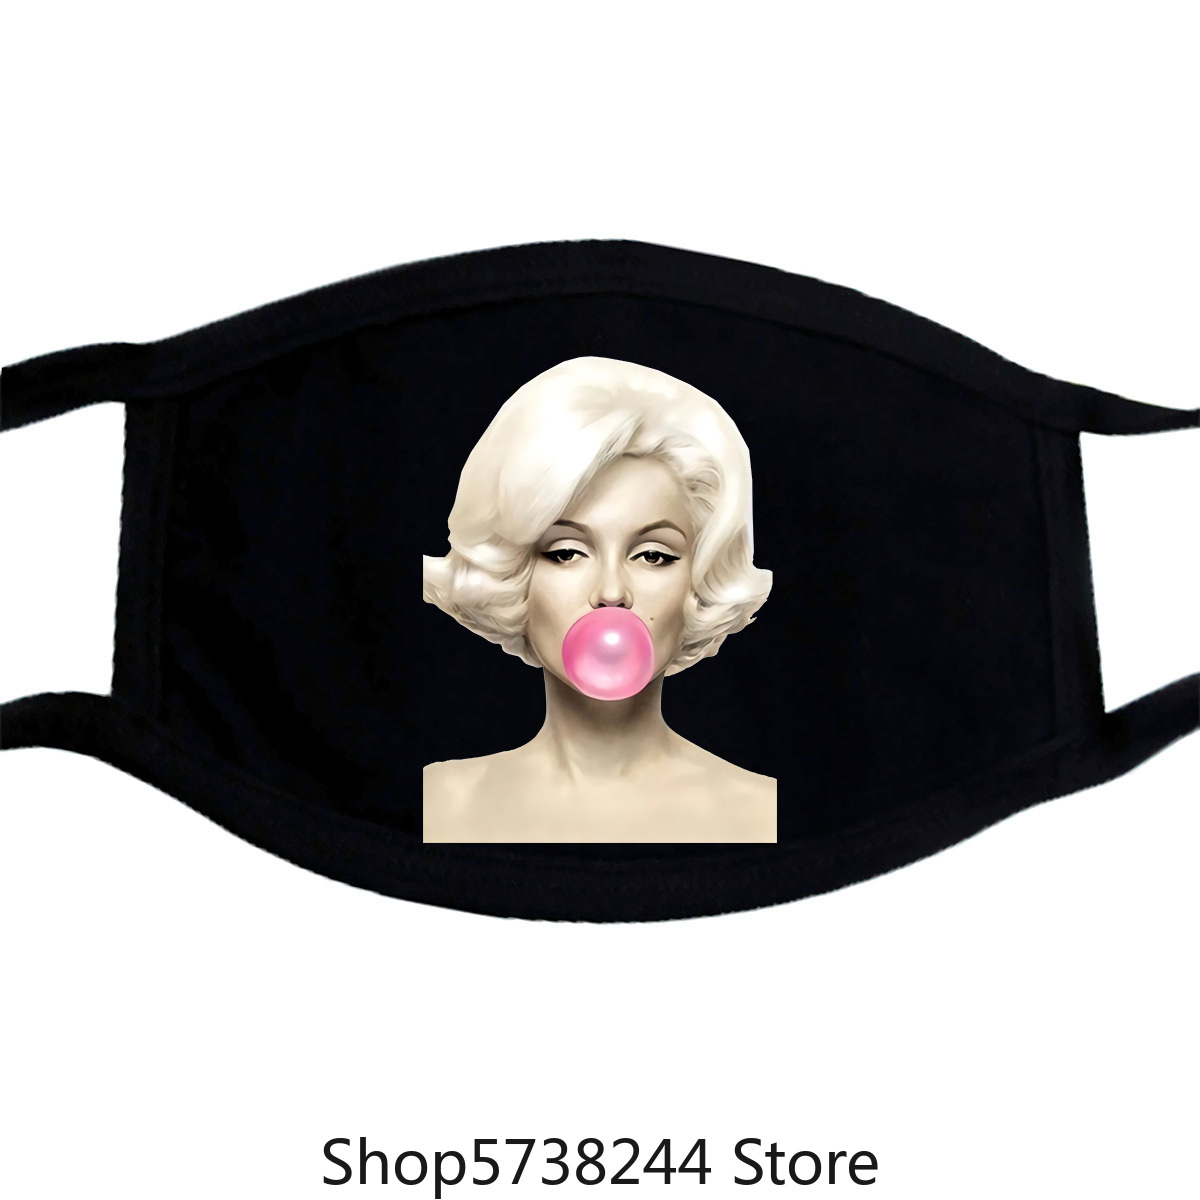 Marilyn Monroe Female Mask Women Bubble Gum Chewing Gum Print Aesthetic Clothes Graphic Tee